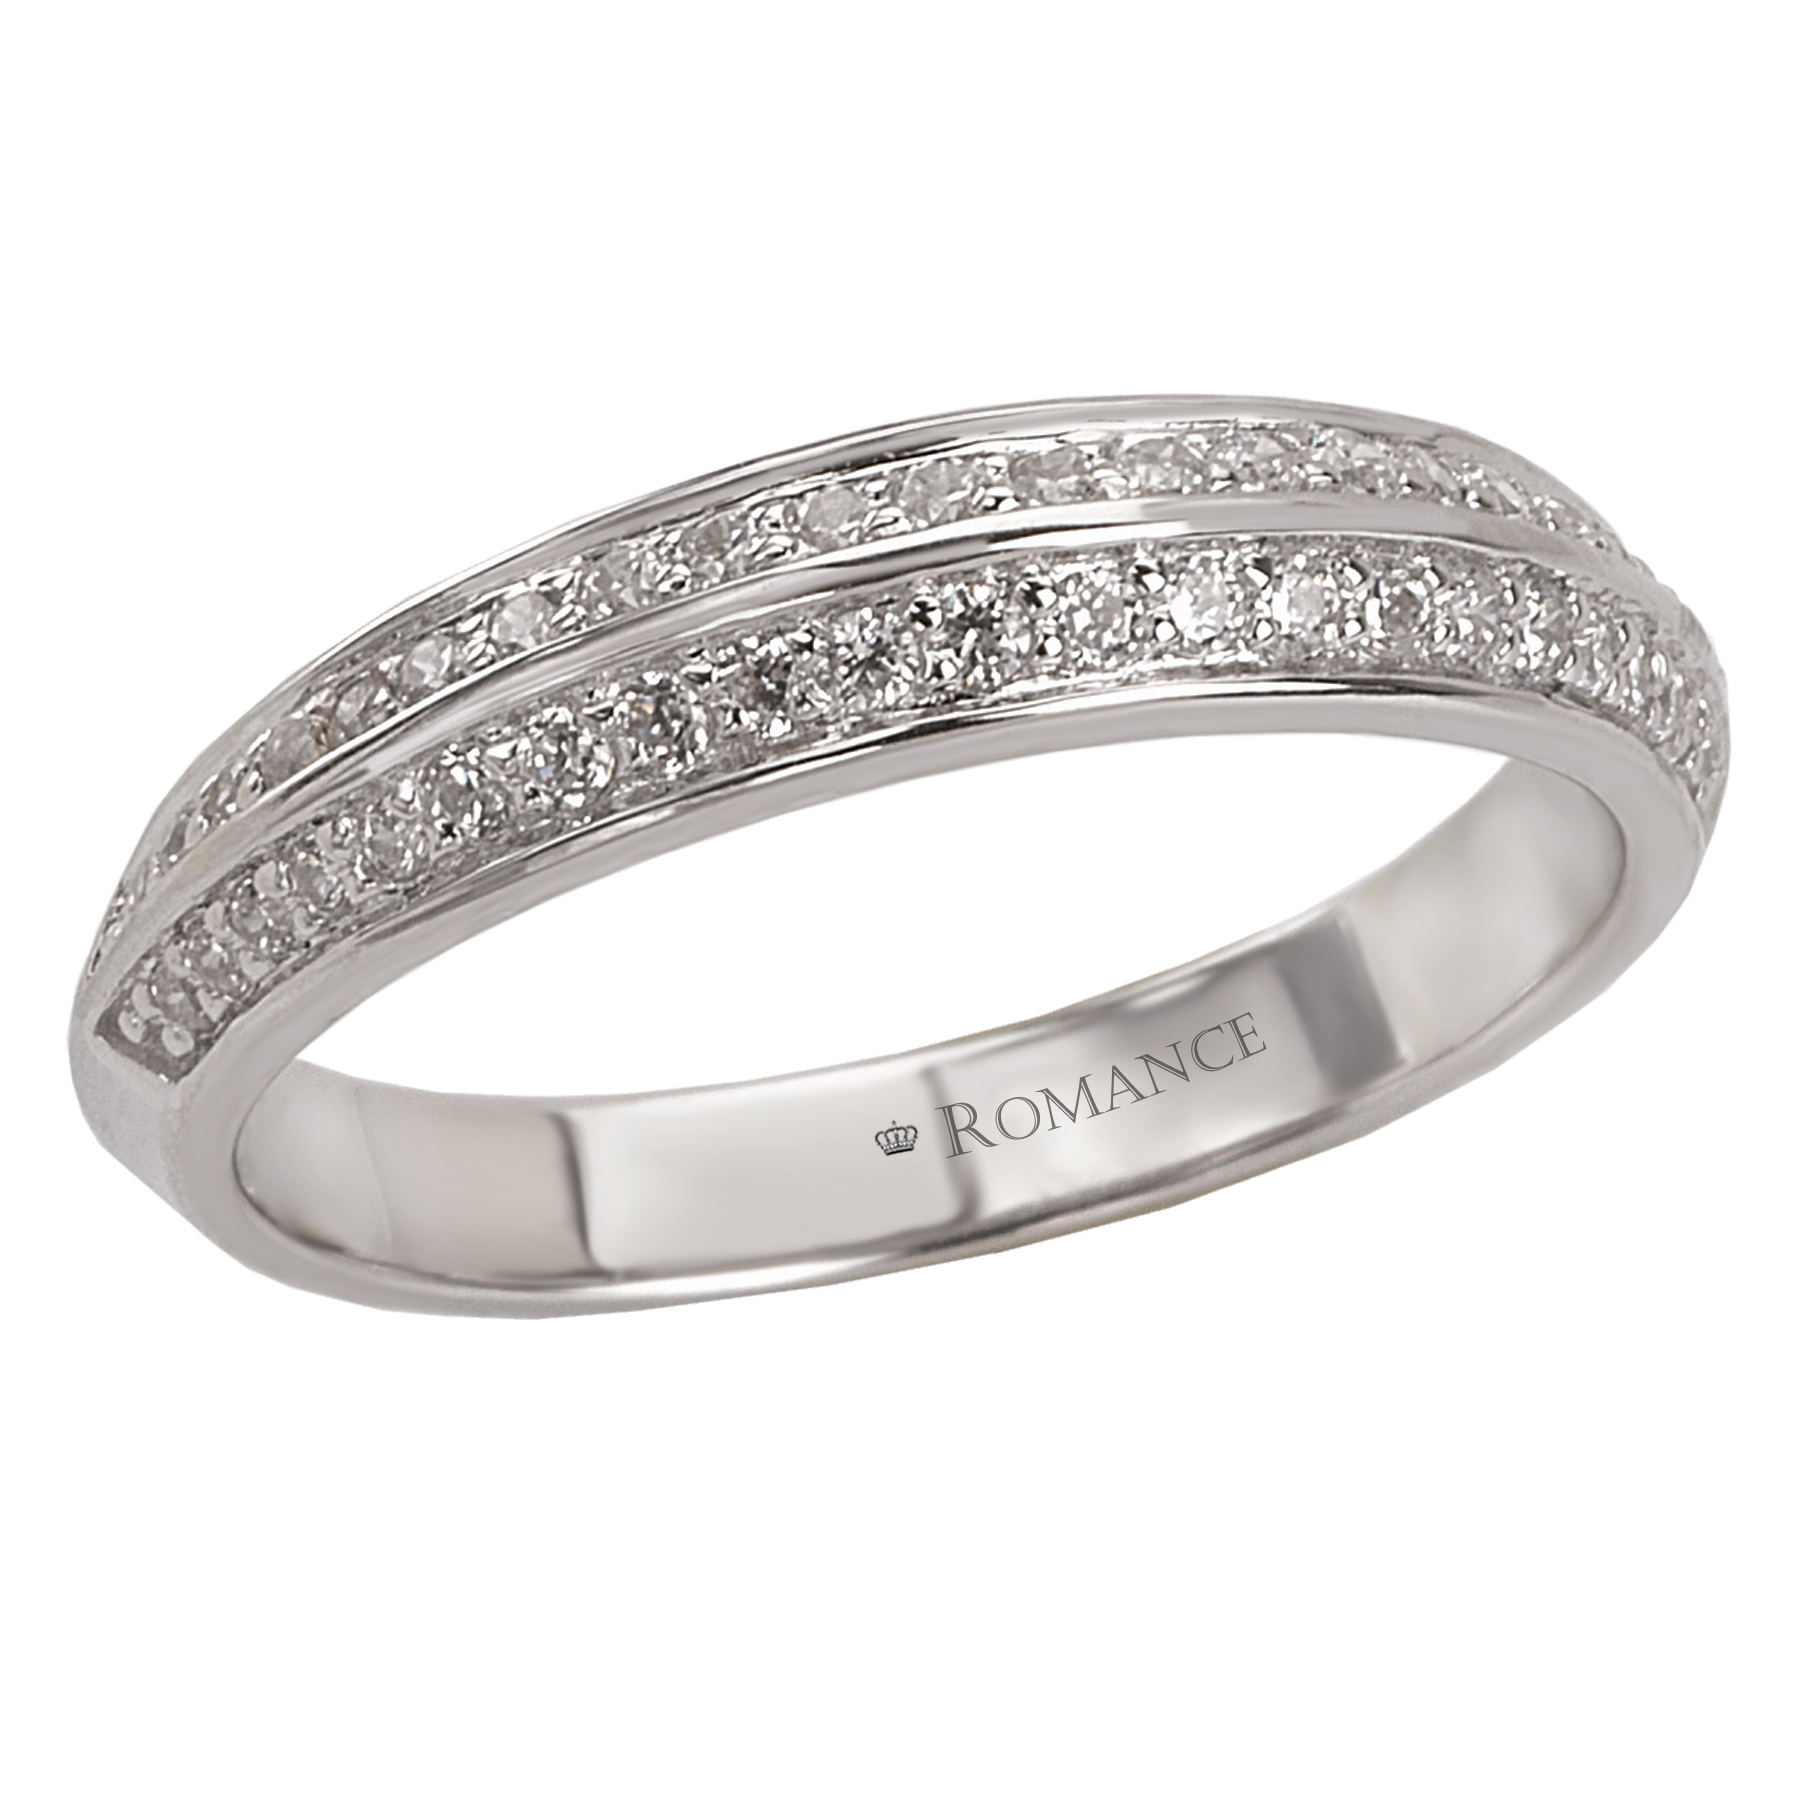 Romance Wedding Bands 117234-W product image